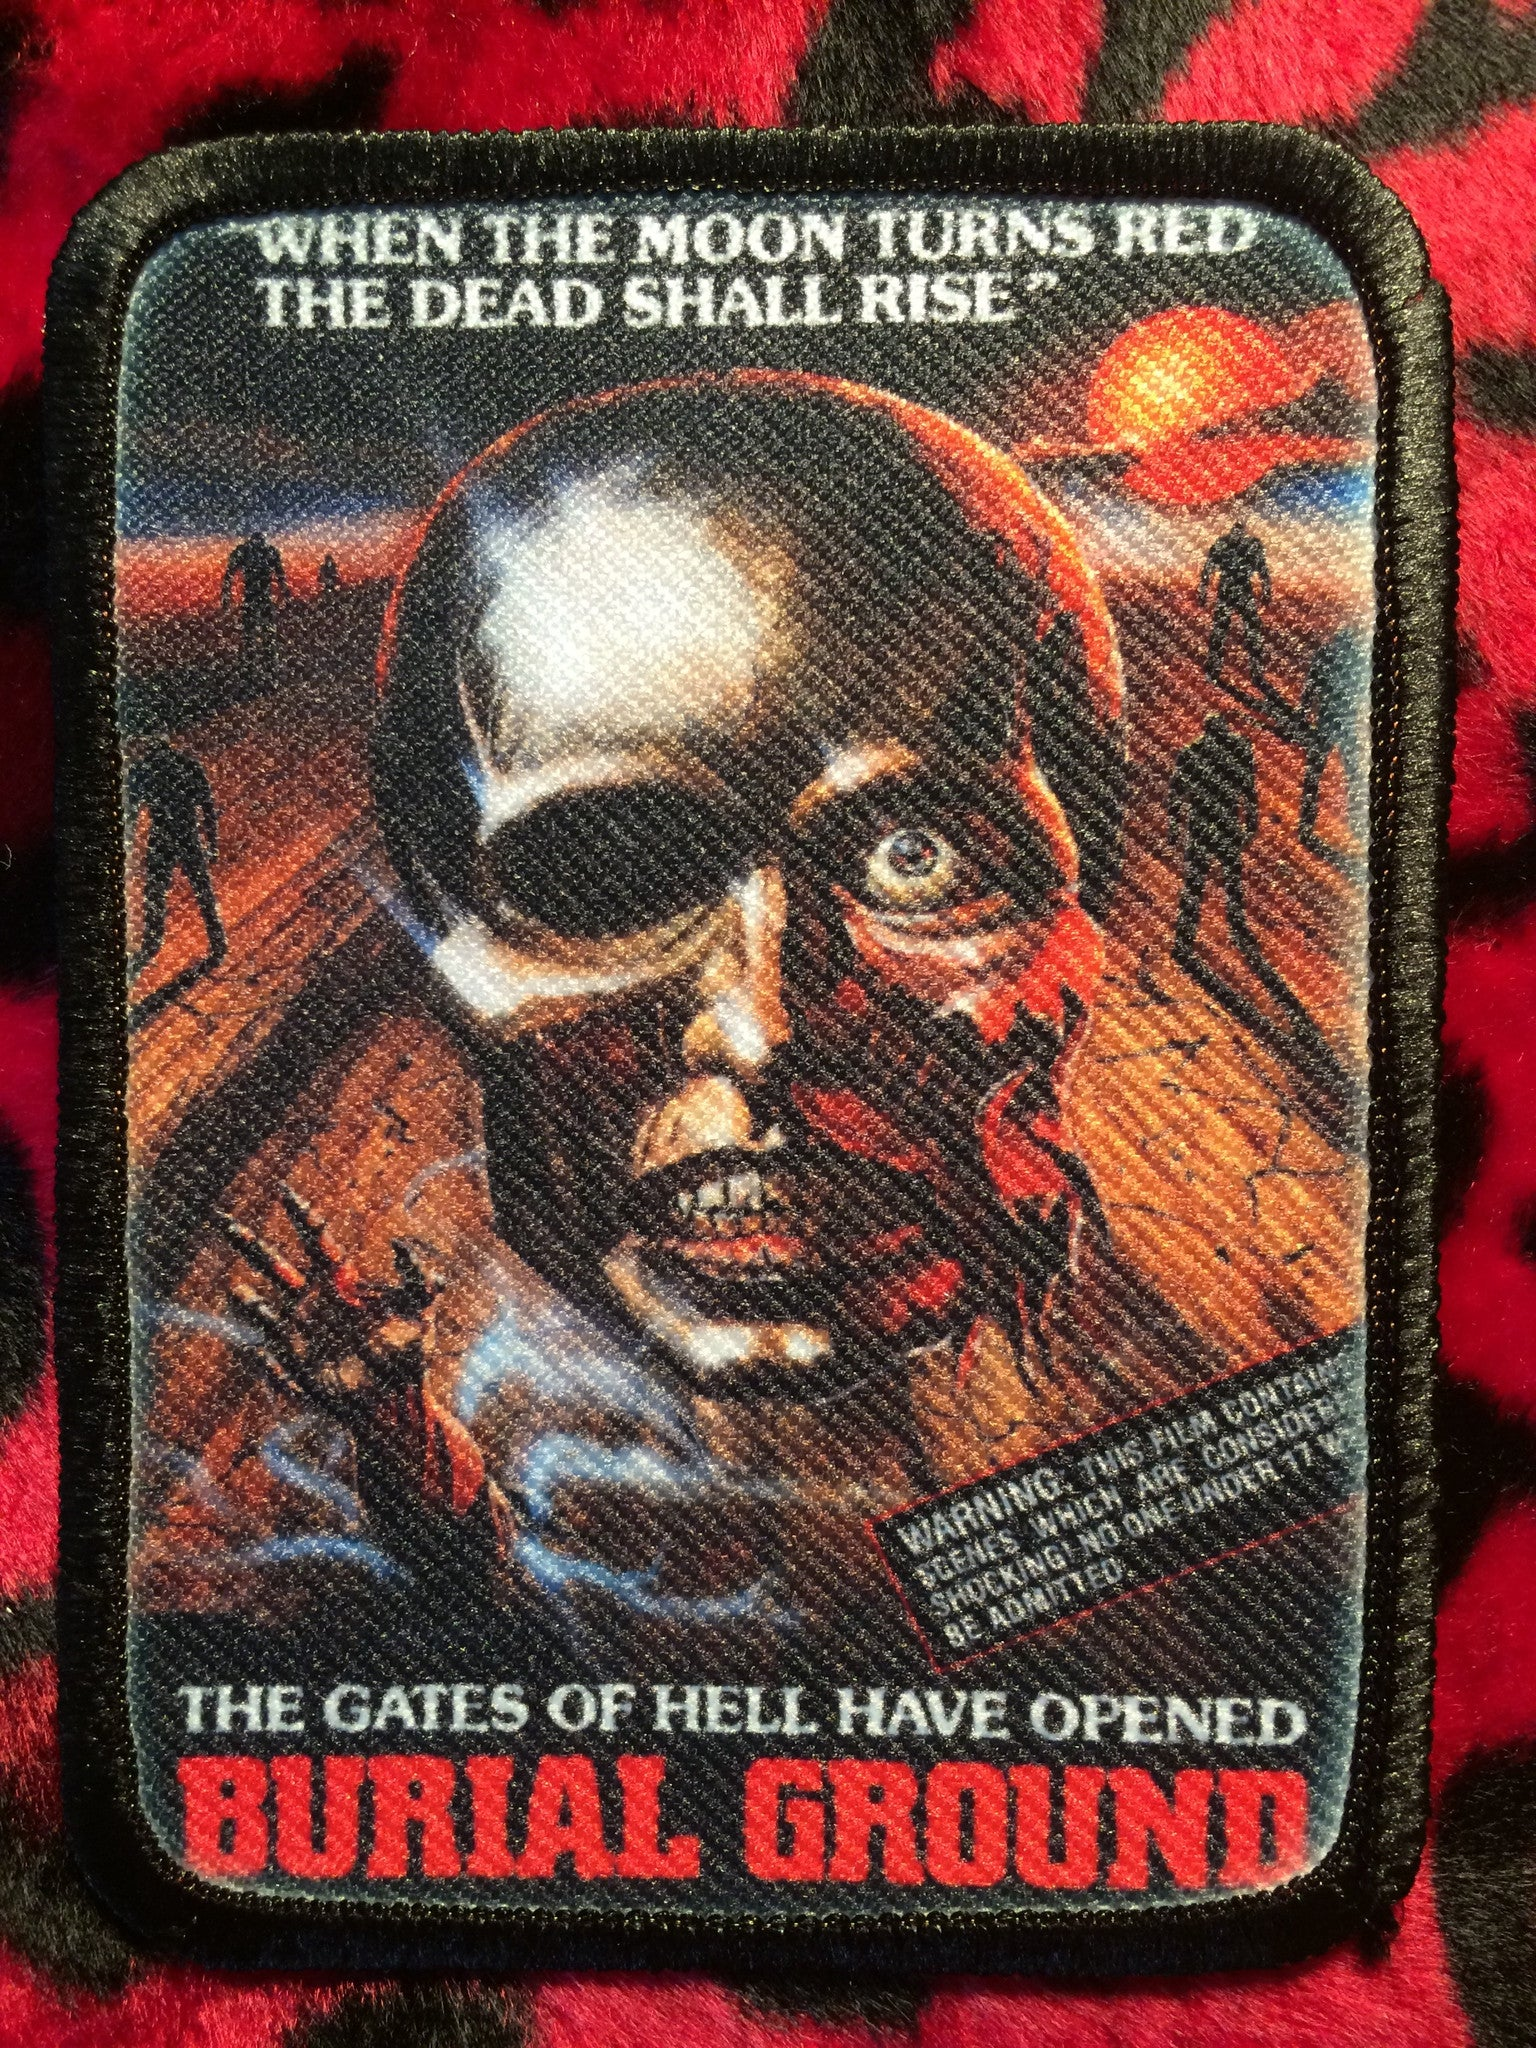 Burial Ground Patch